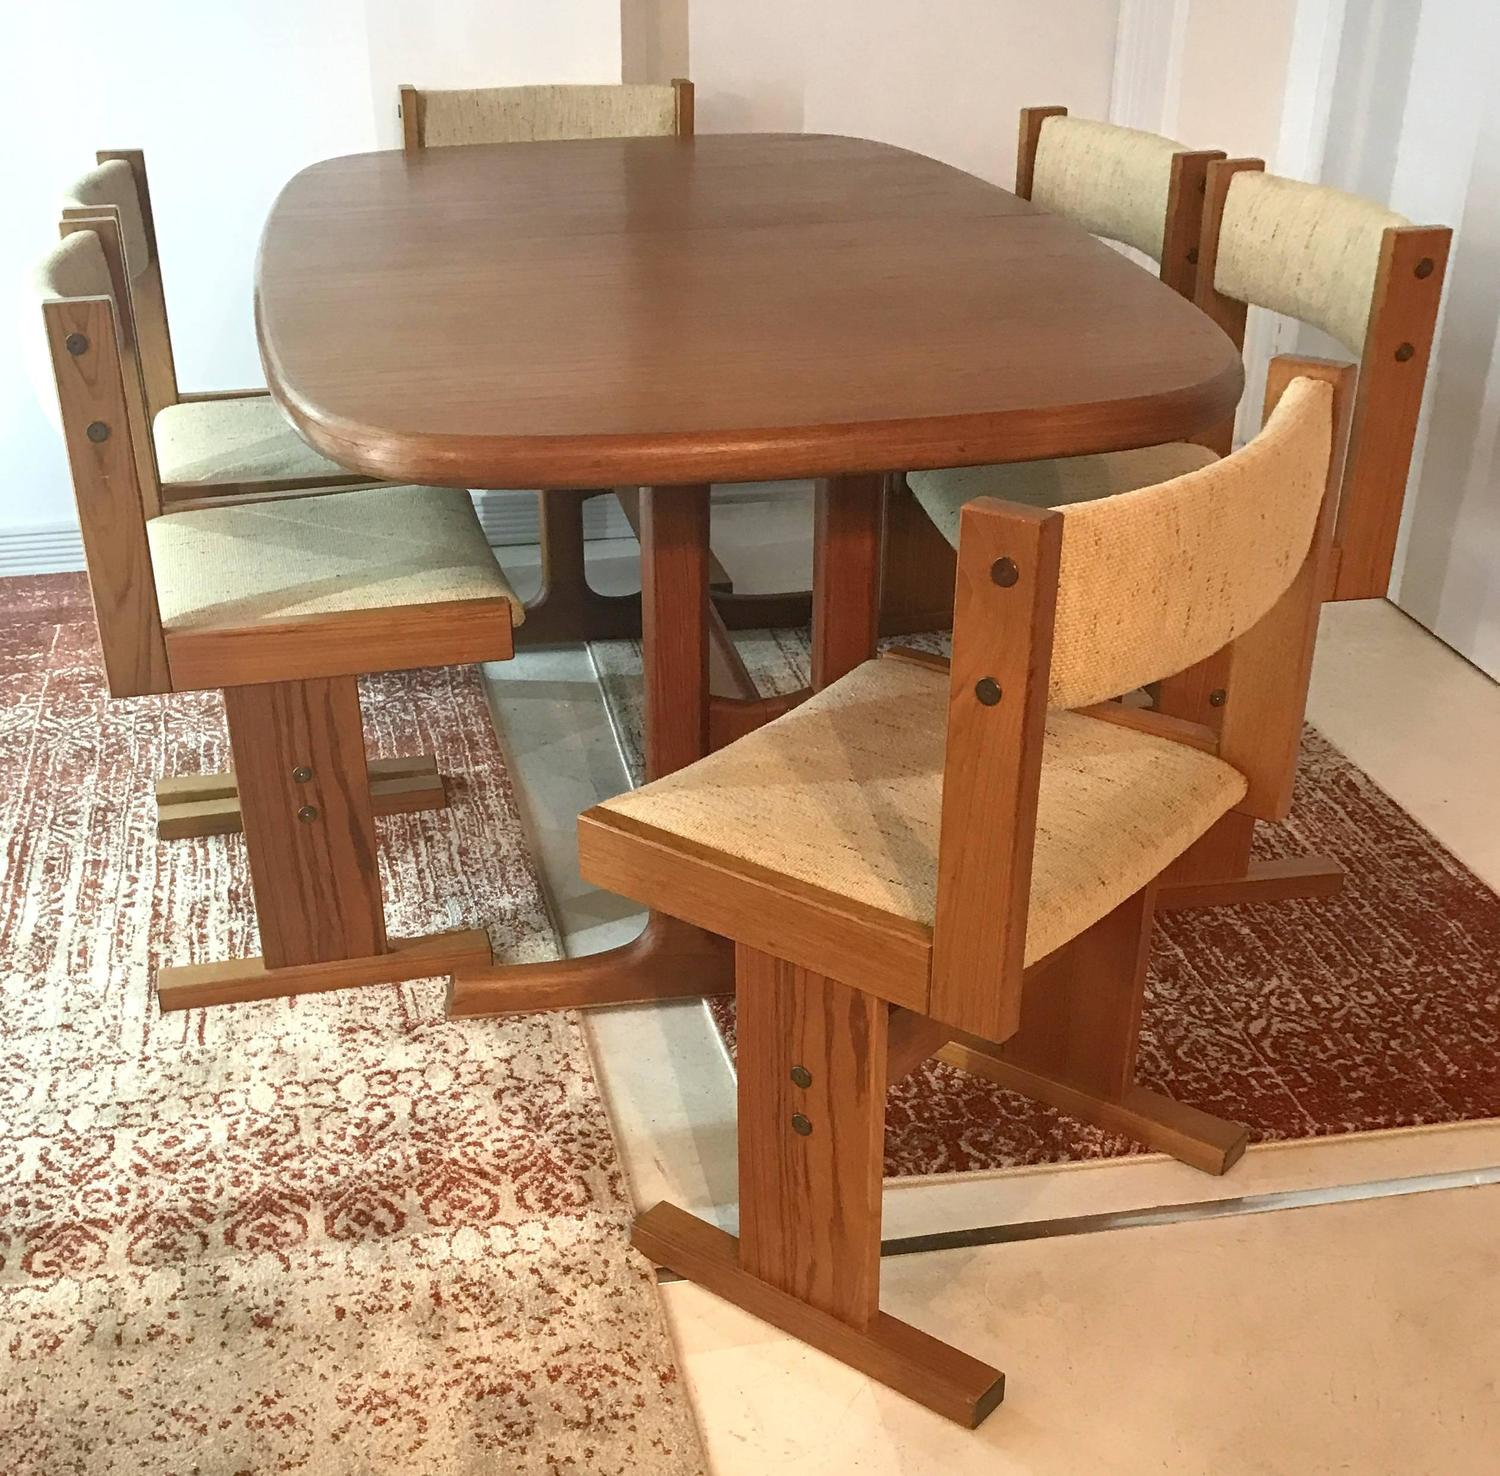 Teak Dining Room Table And Chairs: Mid-Century Danish Teak Extendable Dining Table And Six